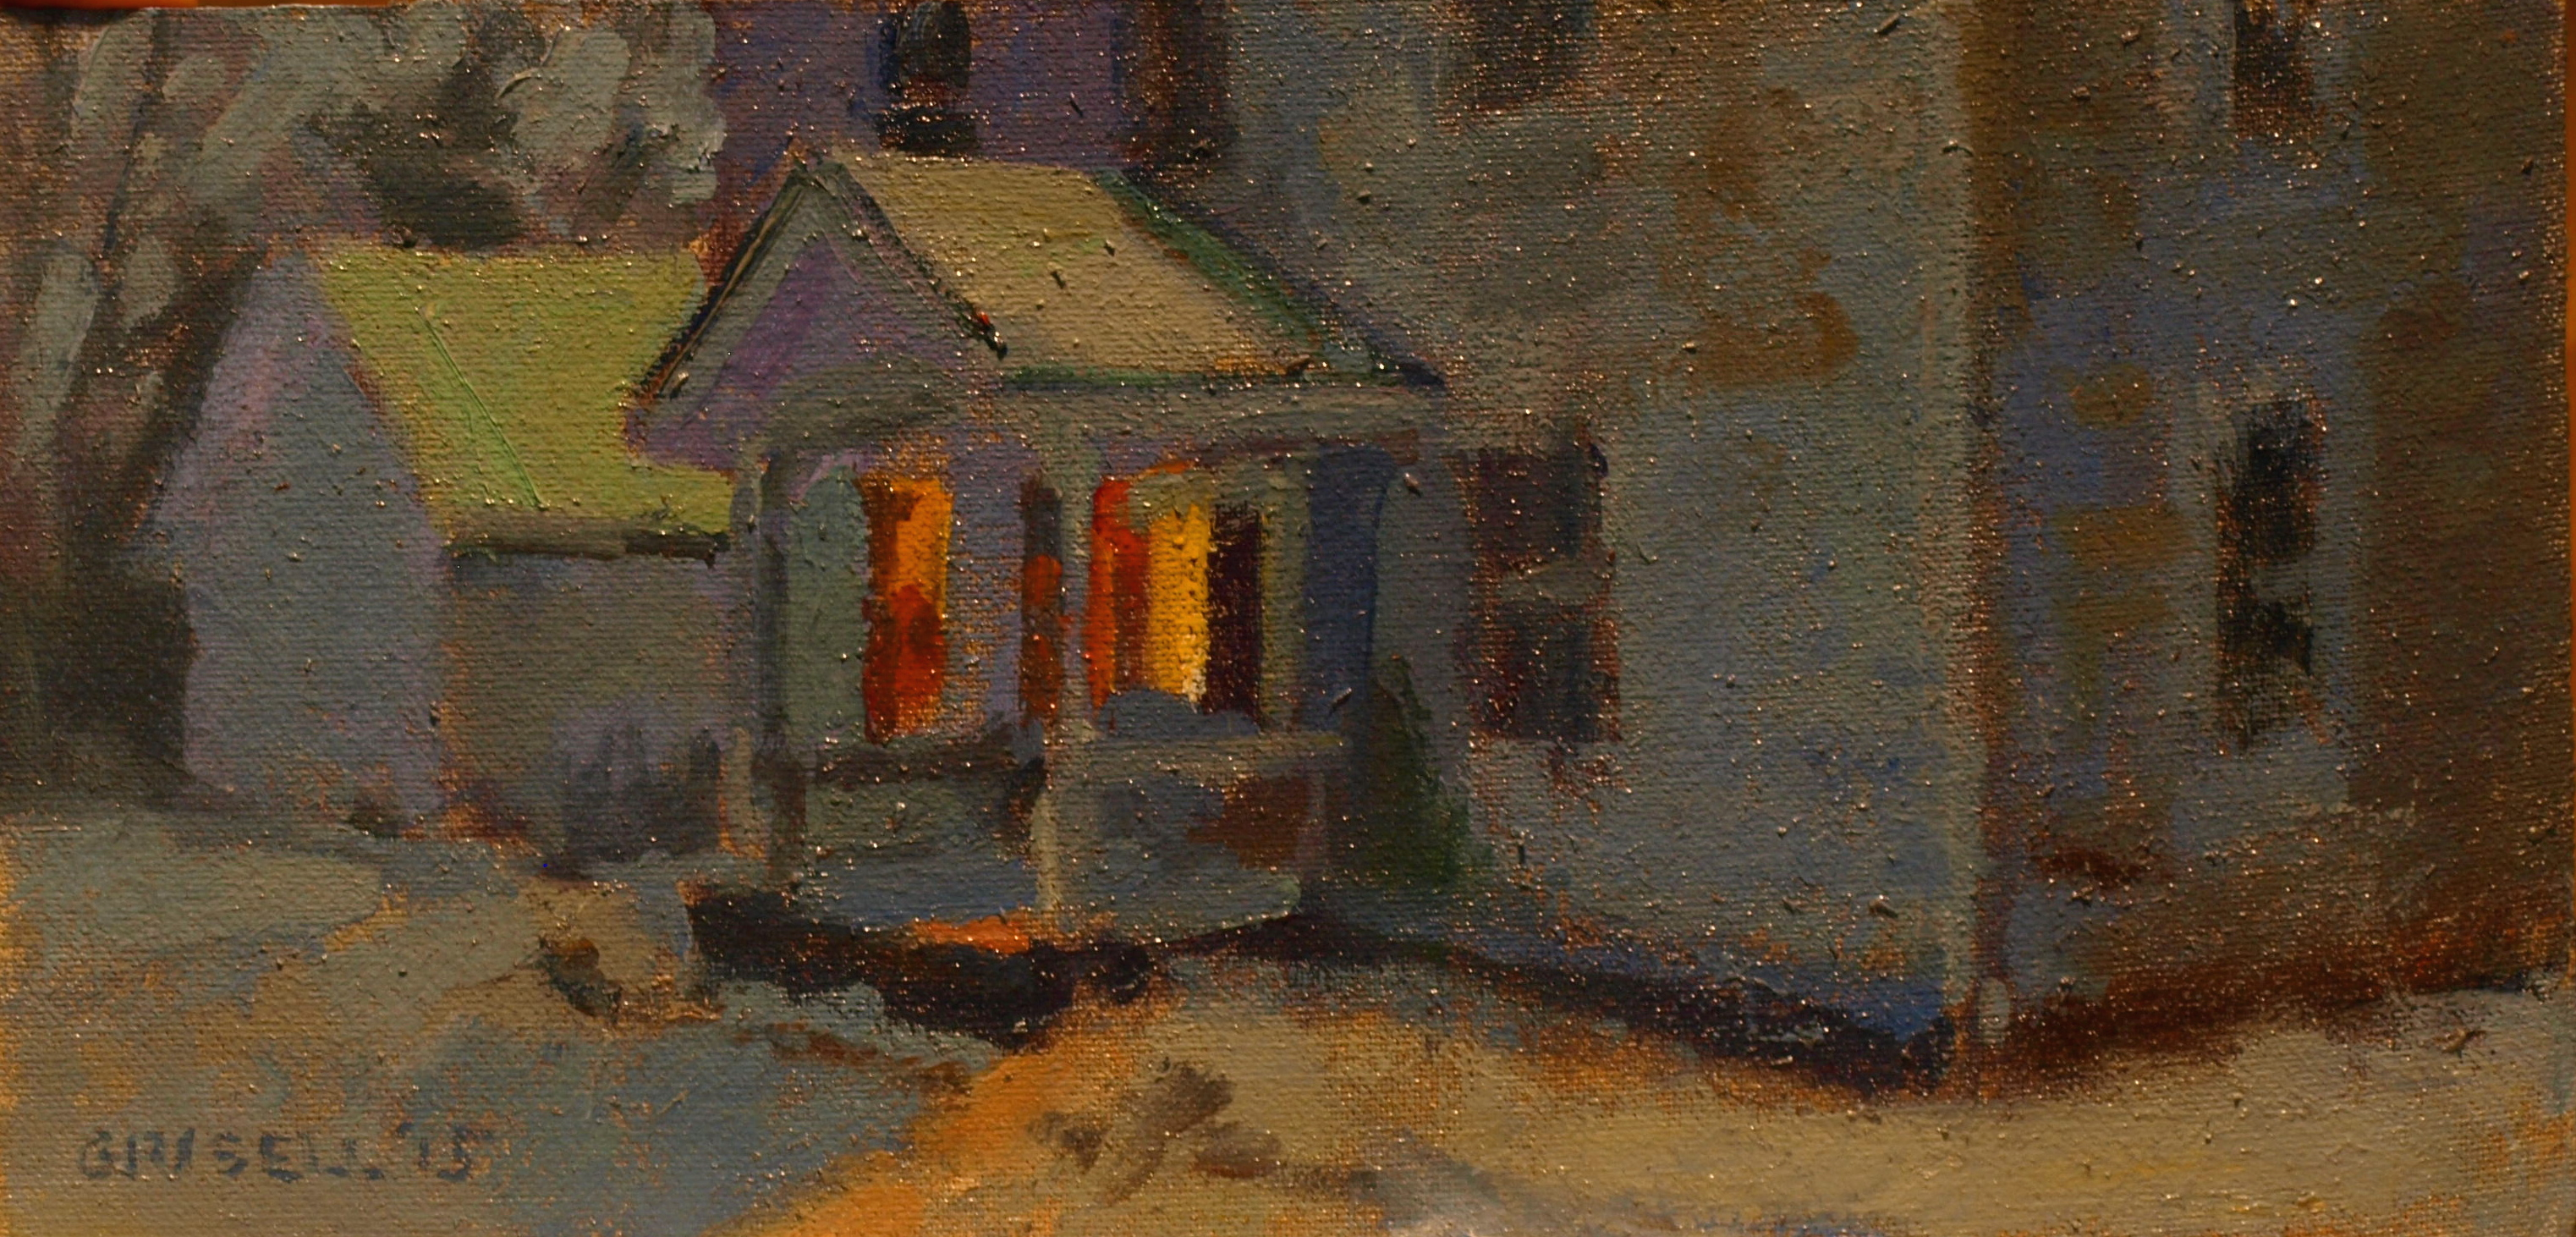 Five O'Clock, Oil on Canvas on Panel, 6 x 12 Inches, by Susan Grisell, $200